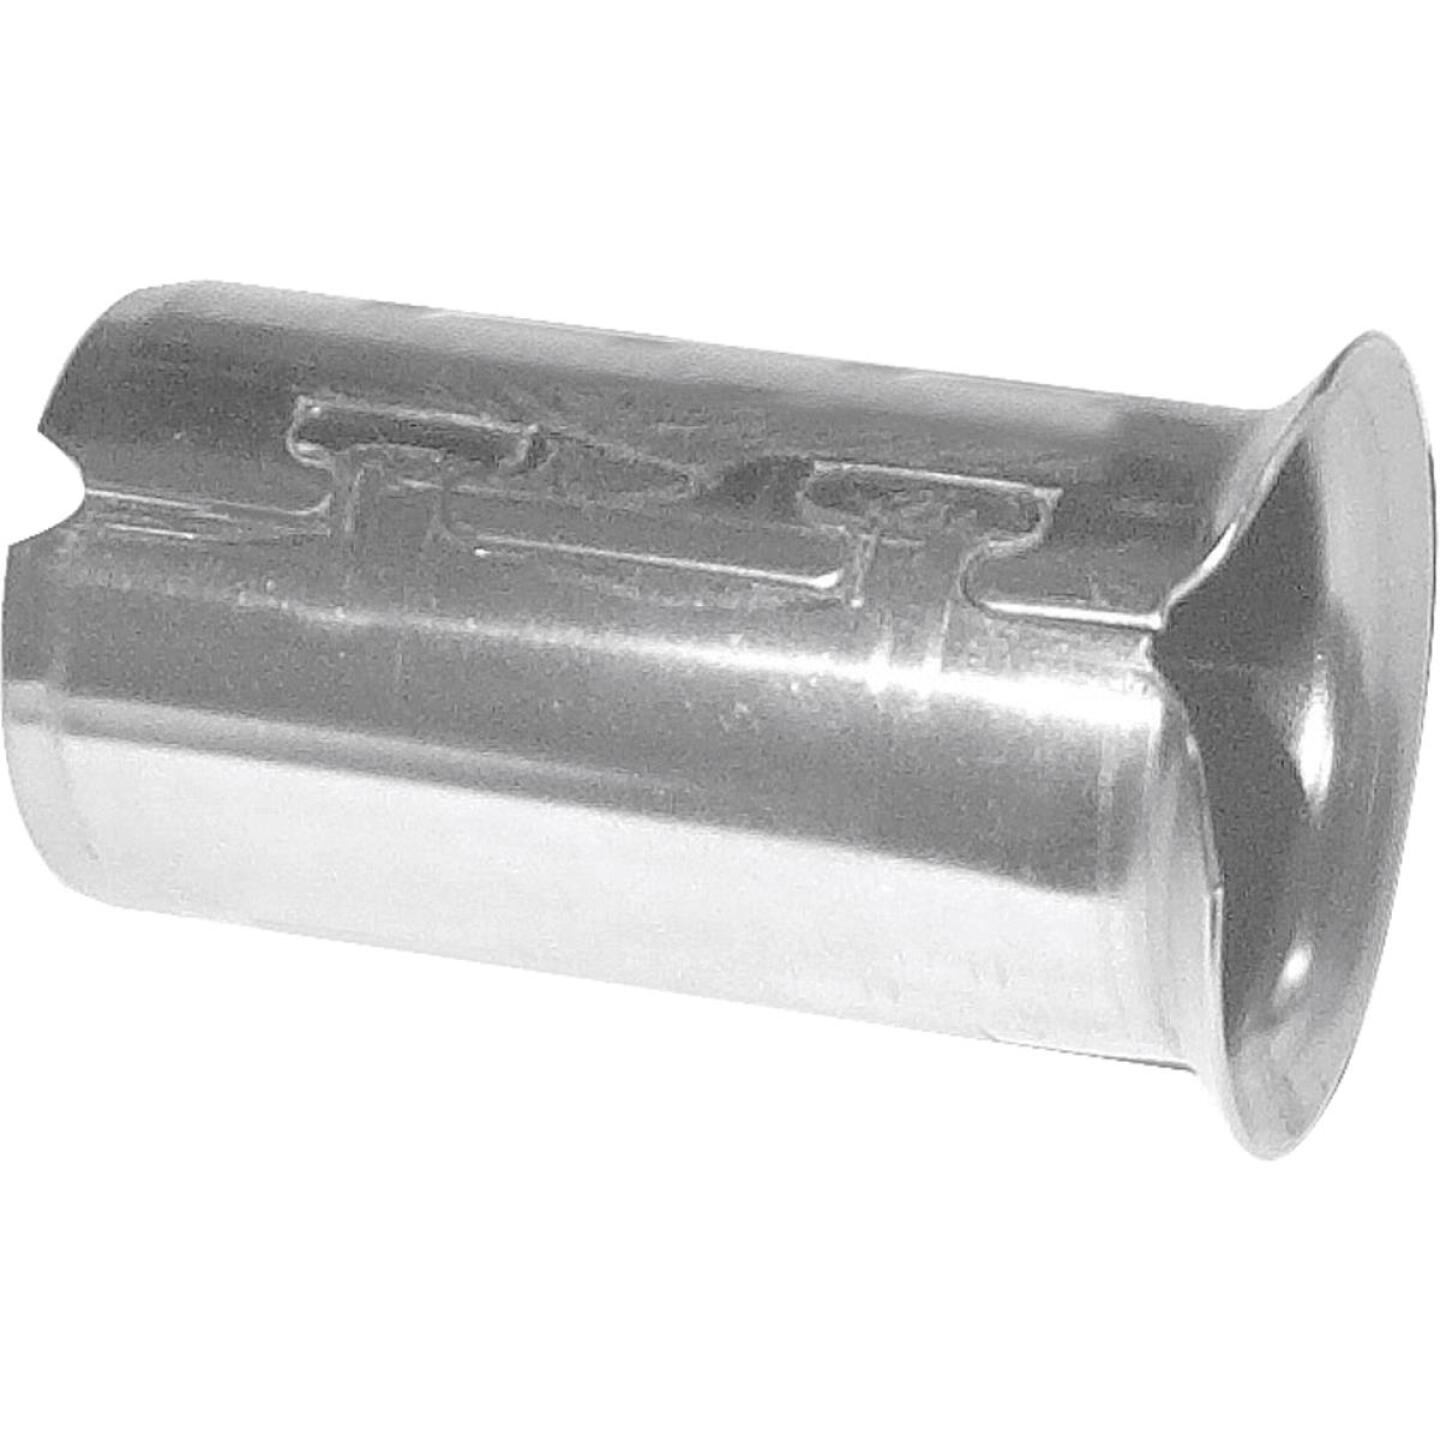 A Y McDonald 1 In. Stainless Steel Insert Stiffener for CTS Poly Pipe Image 1